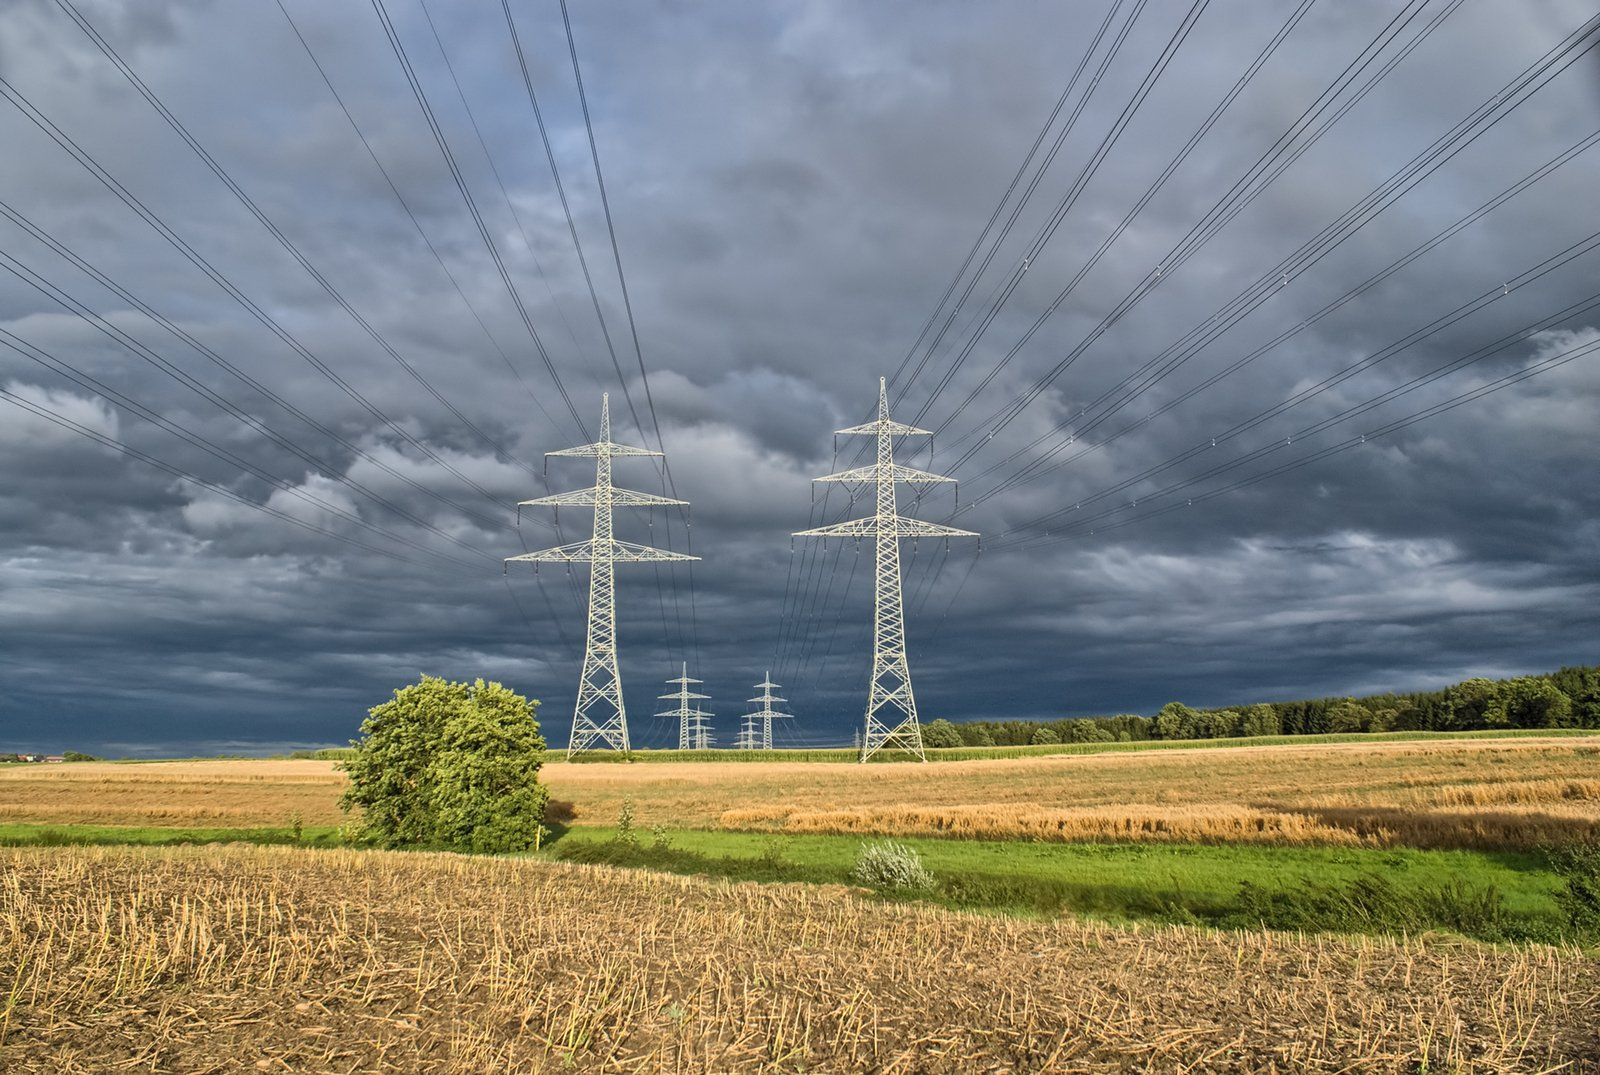 Power Lines in rural Landscape, upcoming Thunderstorm